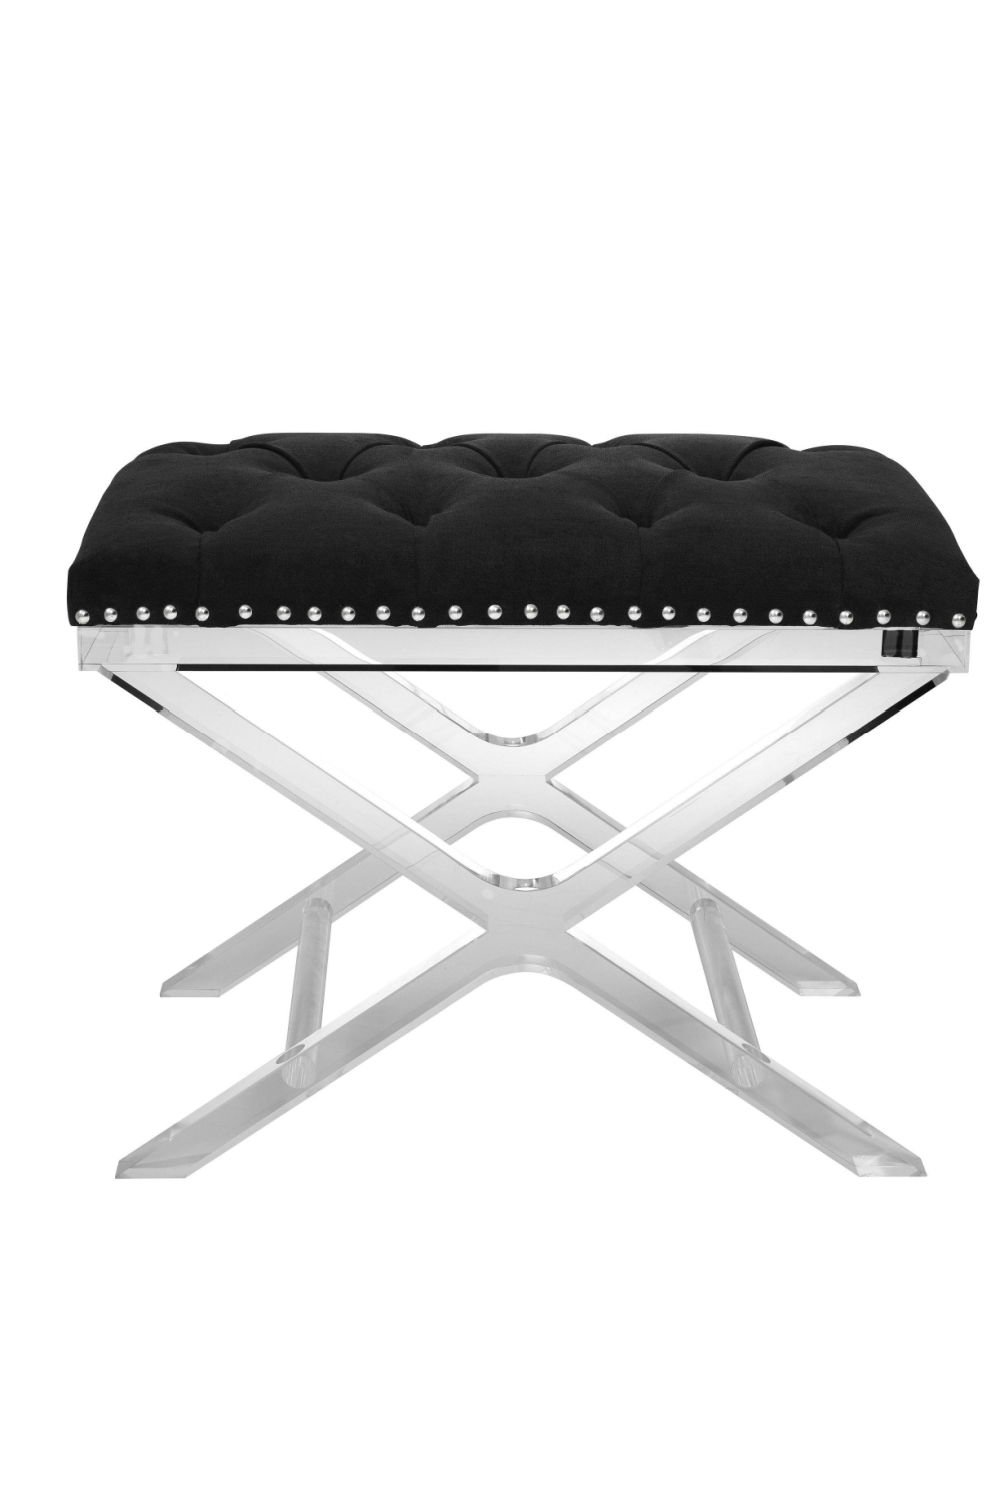 Black Button Tufted Stool | Eichholtz Bruno | #1 Eichholtz Retailer